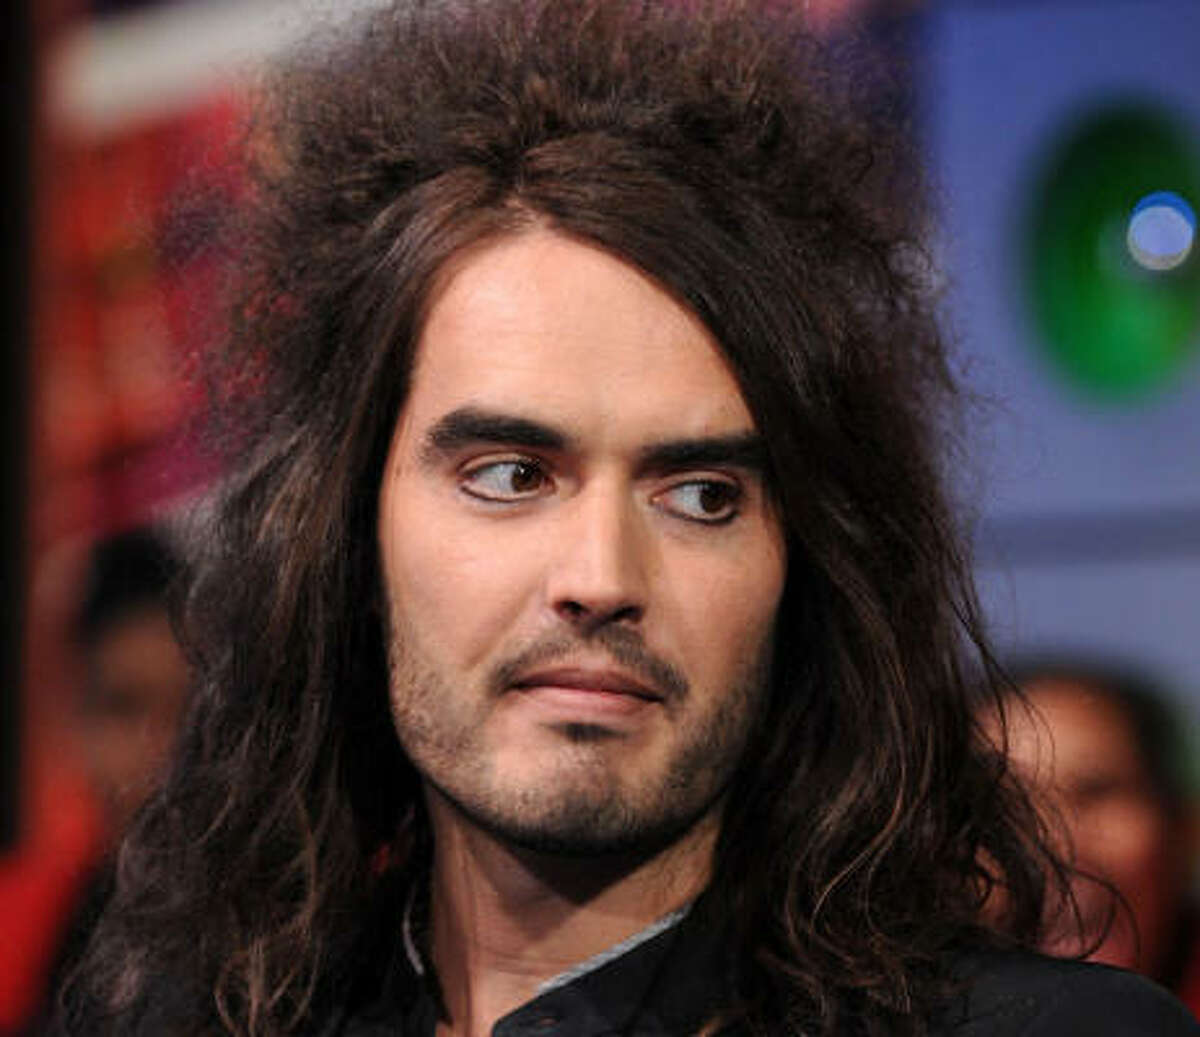 Russell Brand often appears onstage and off with heavy guyliner.